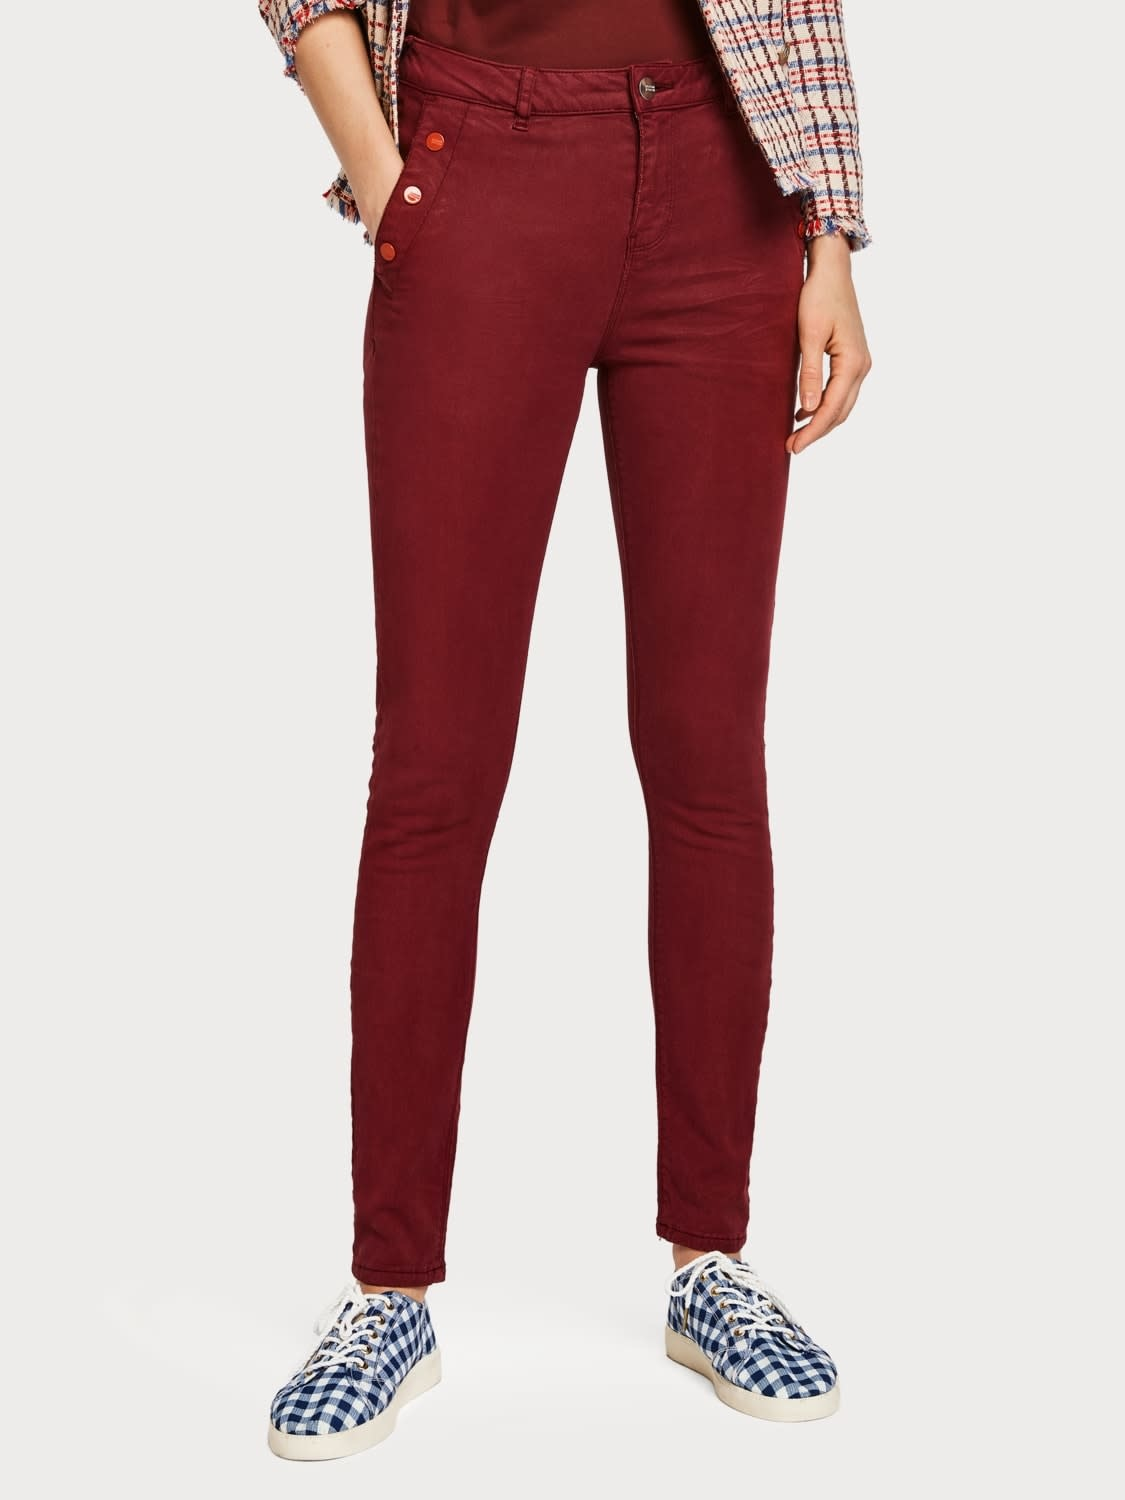 Maison Scotch Maison Scotch Trousers High rise skinny fit